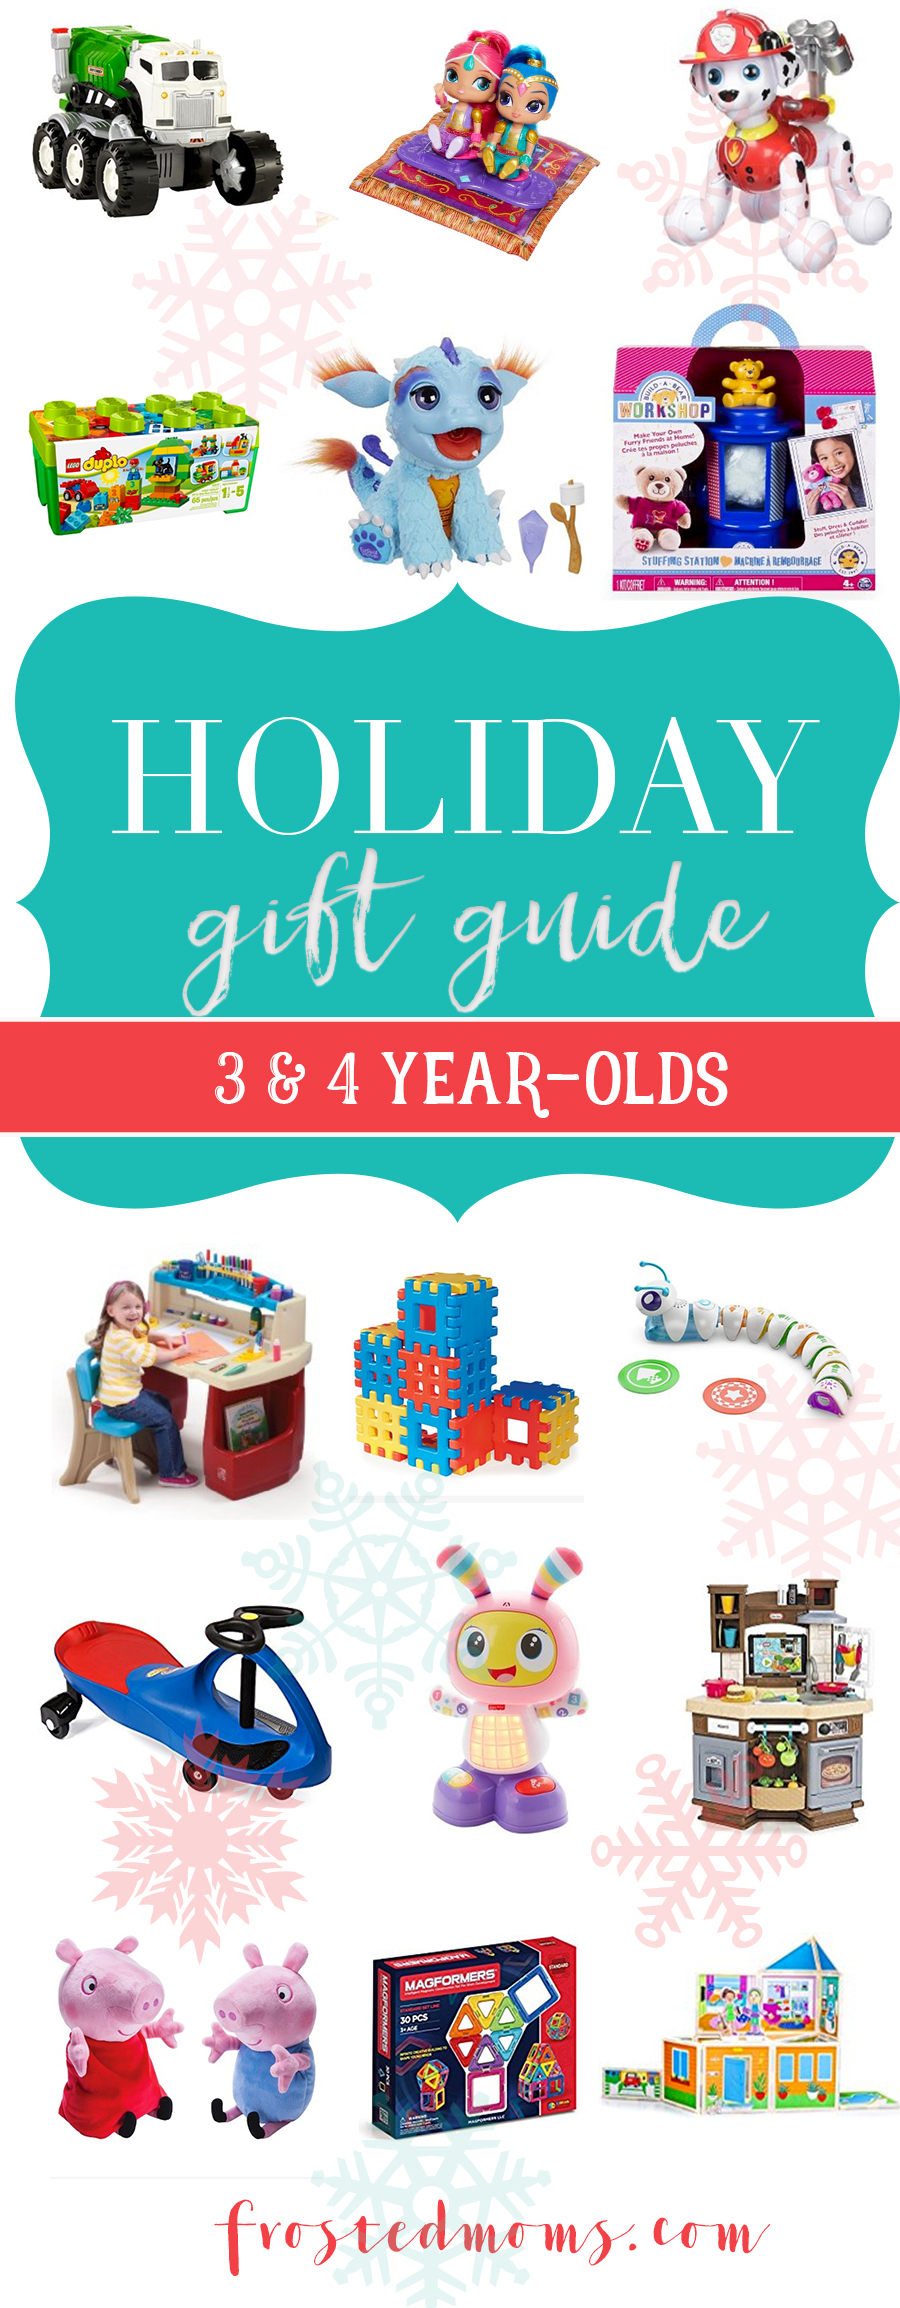 Top Toys for Three & Four Year Olds Holiday Gift Guide 2016